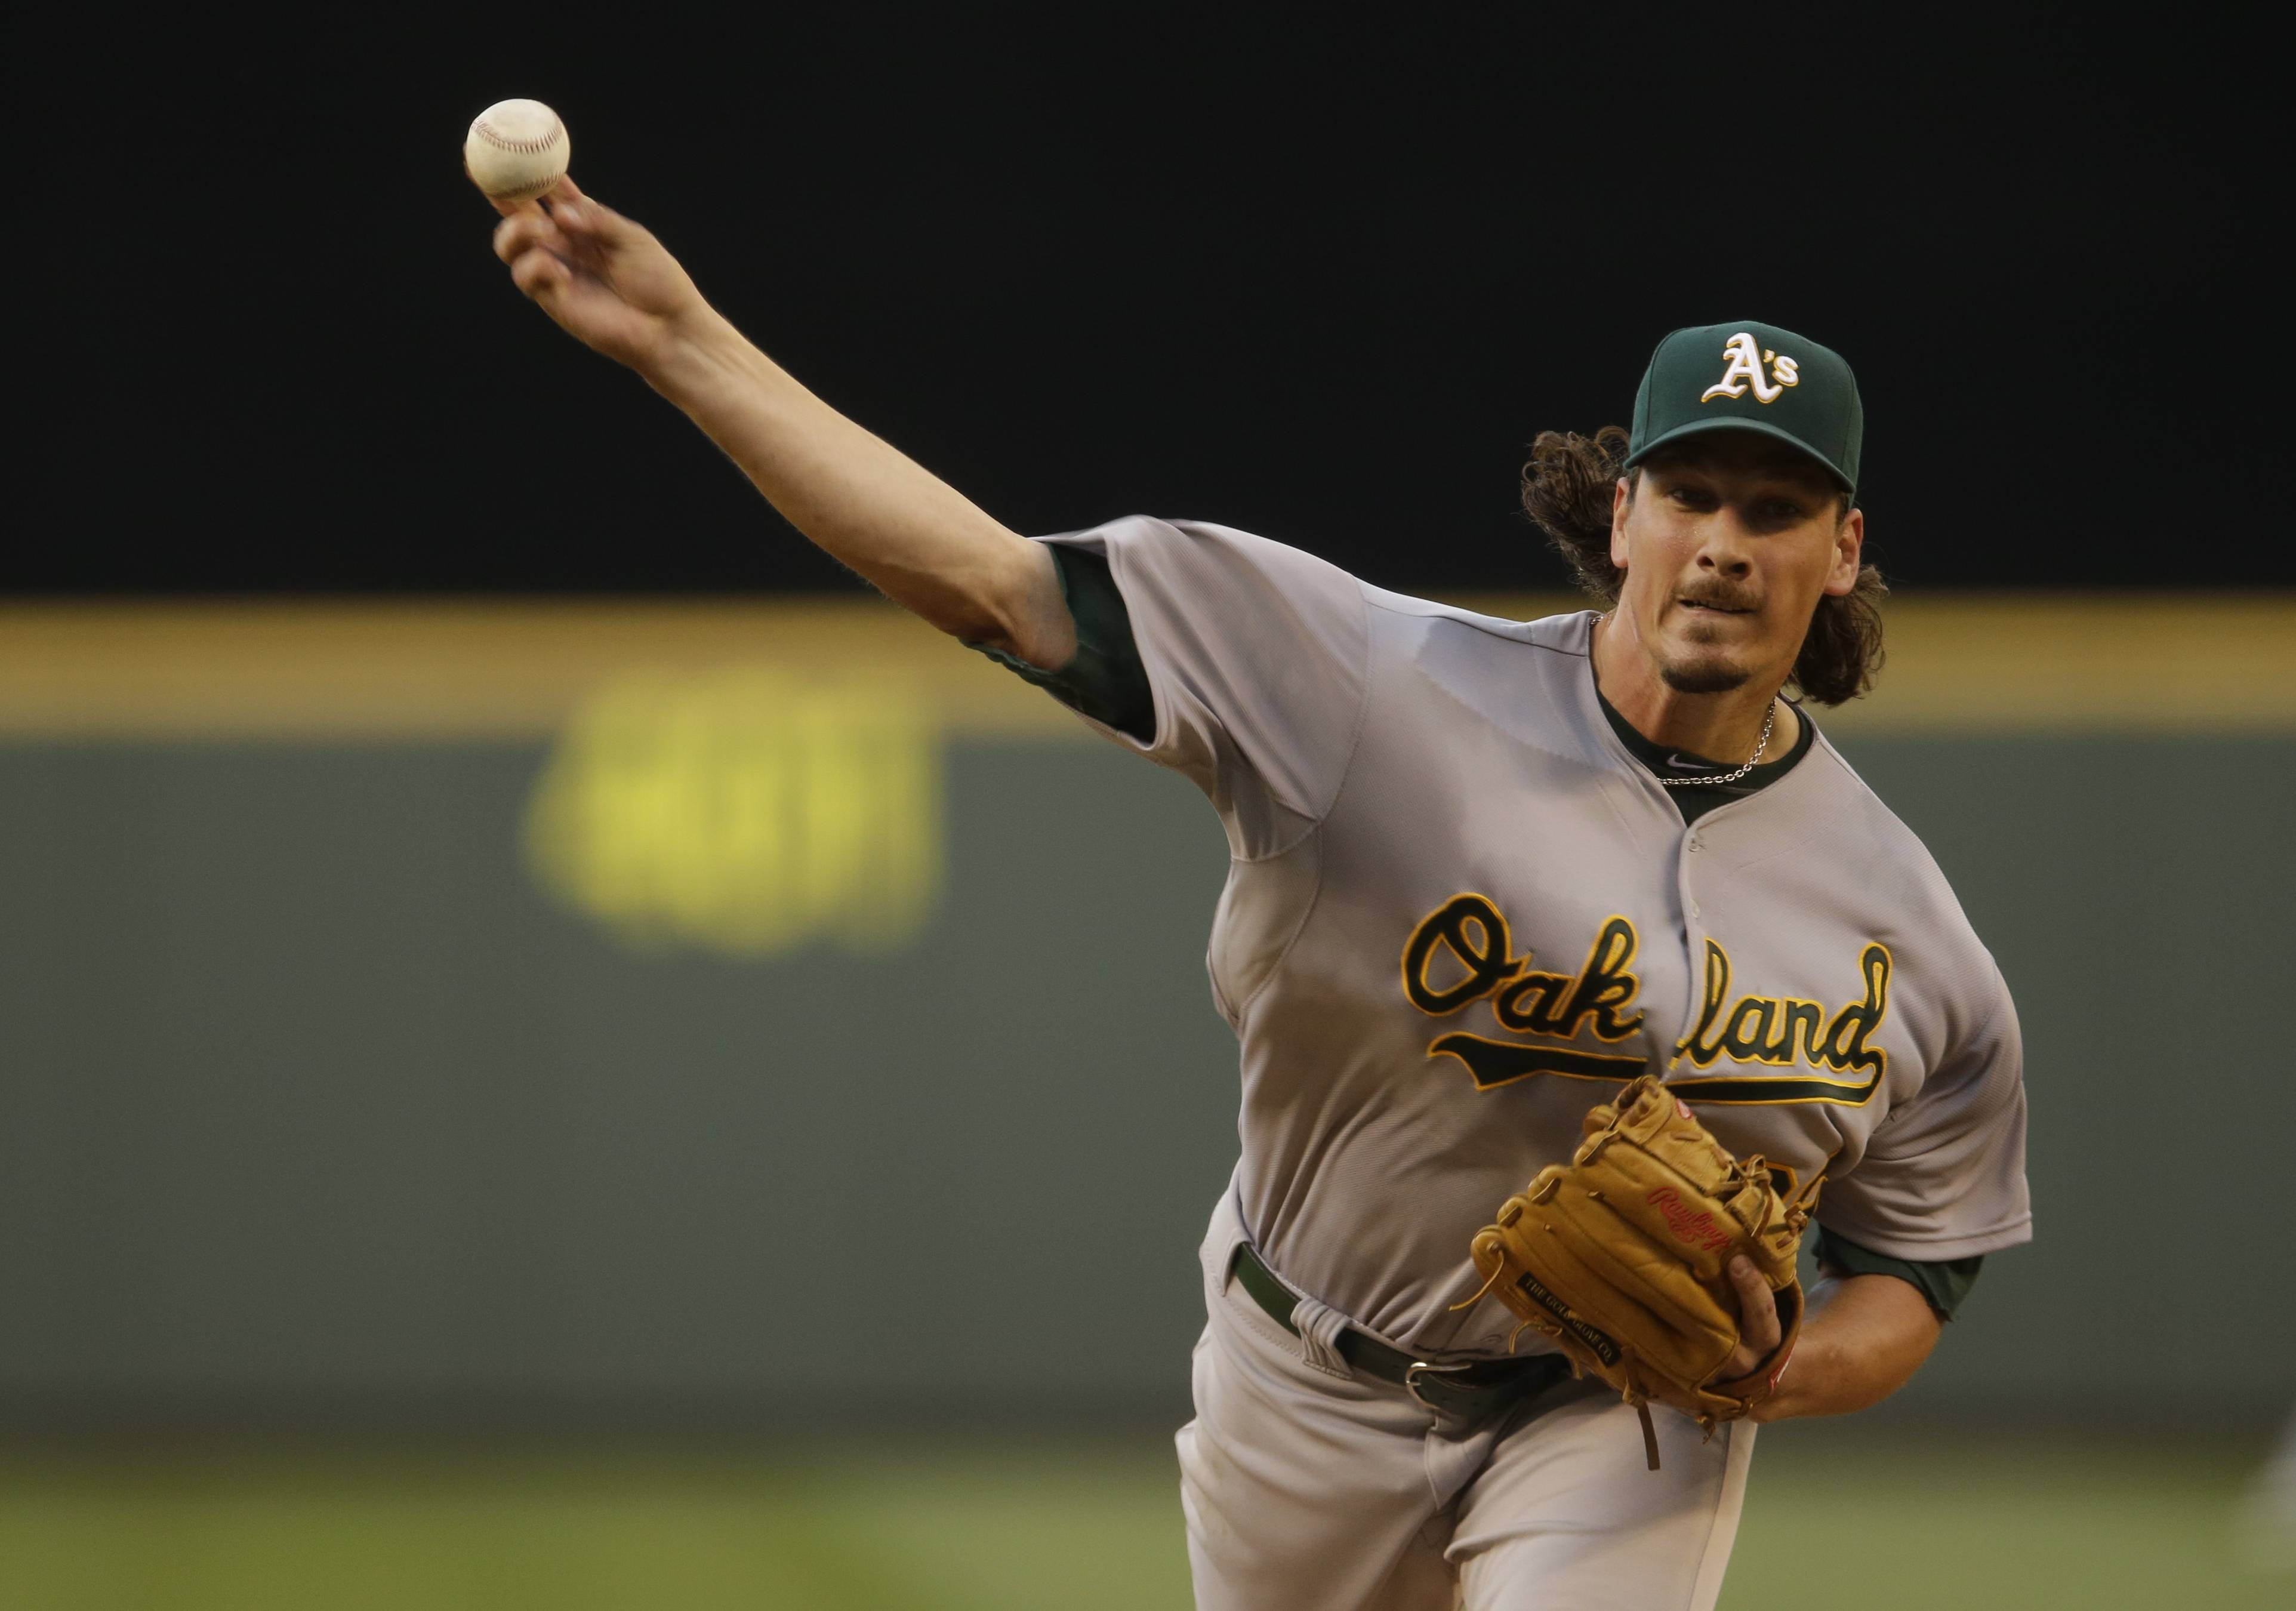 Keeping Jeff Samardzija would have kept the Cubs competitive this year, but trading him along with Jason Hammel means the North Siders are one step closer to being a yearly playoff contender, according to Len Kasper.